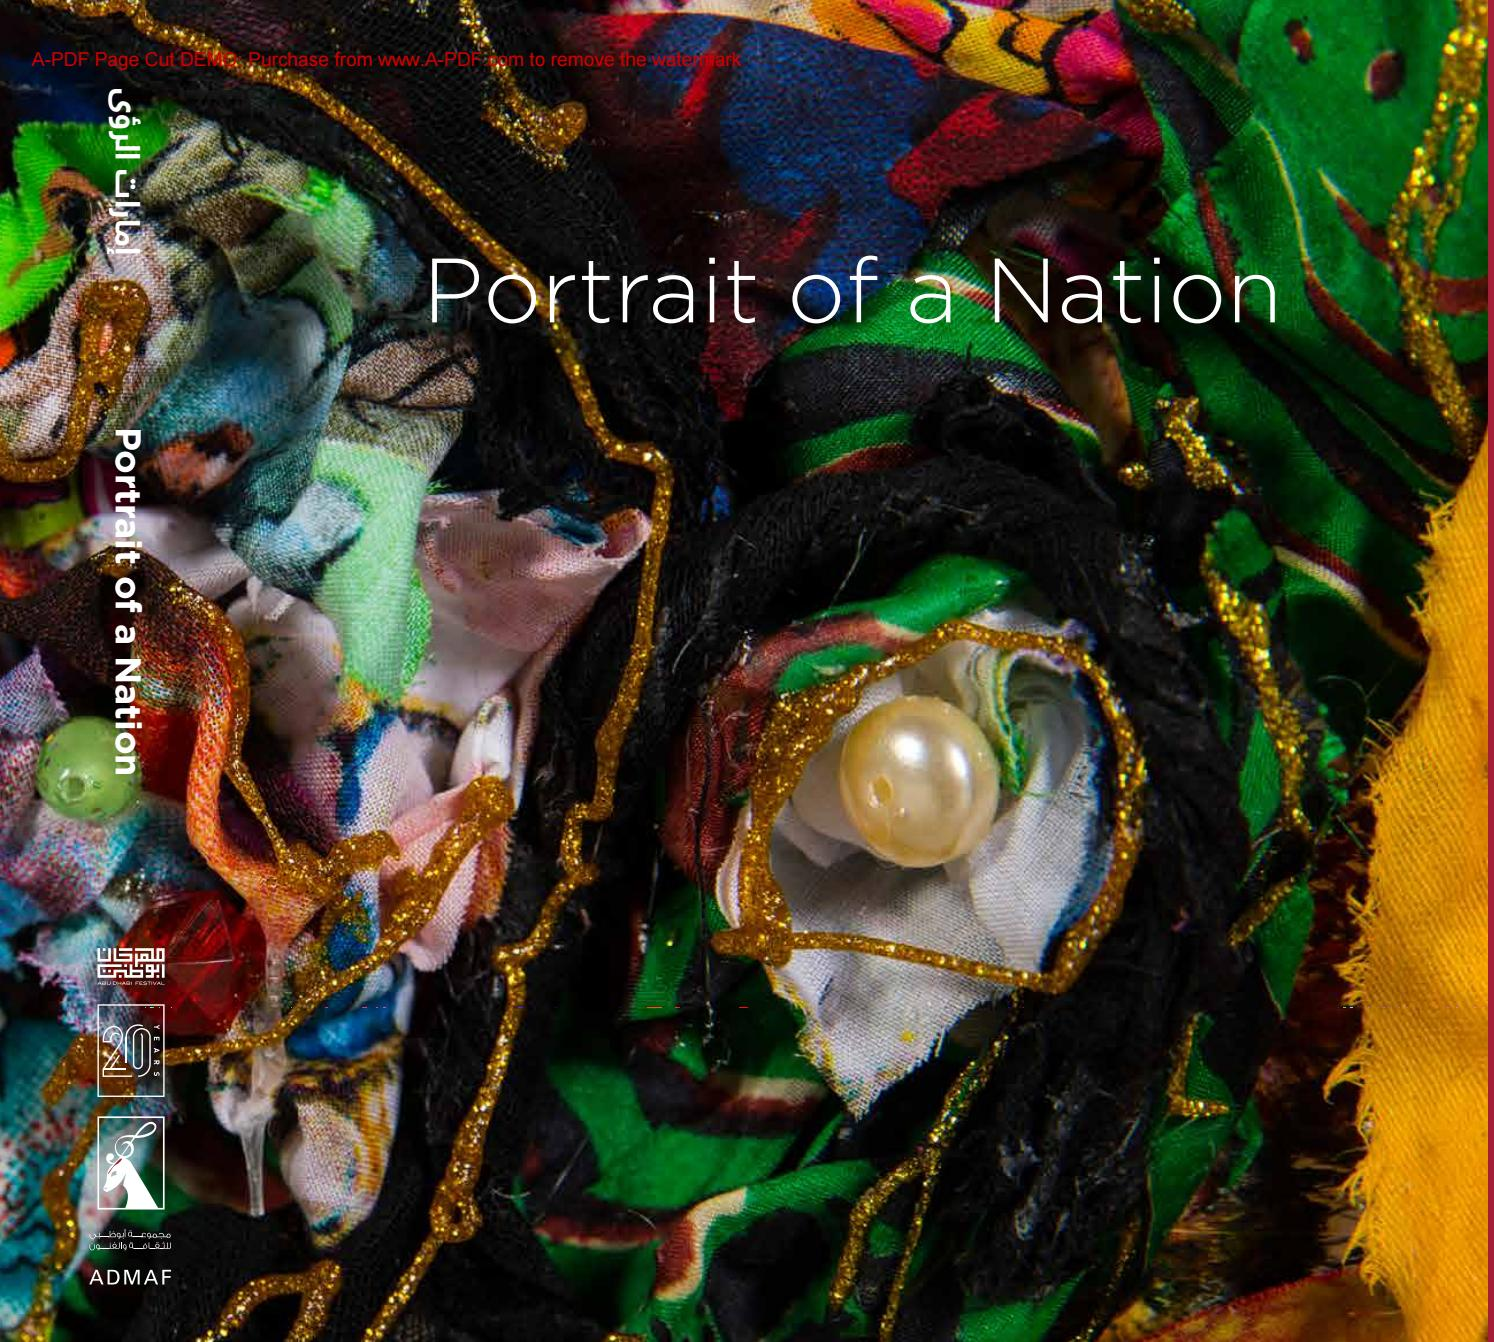 c88784e15 Portrait of a Nation by Abu_Dhabi_Festival - issuu